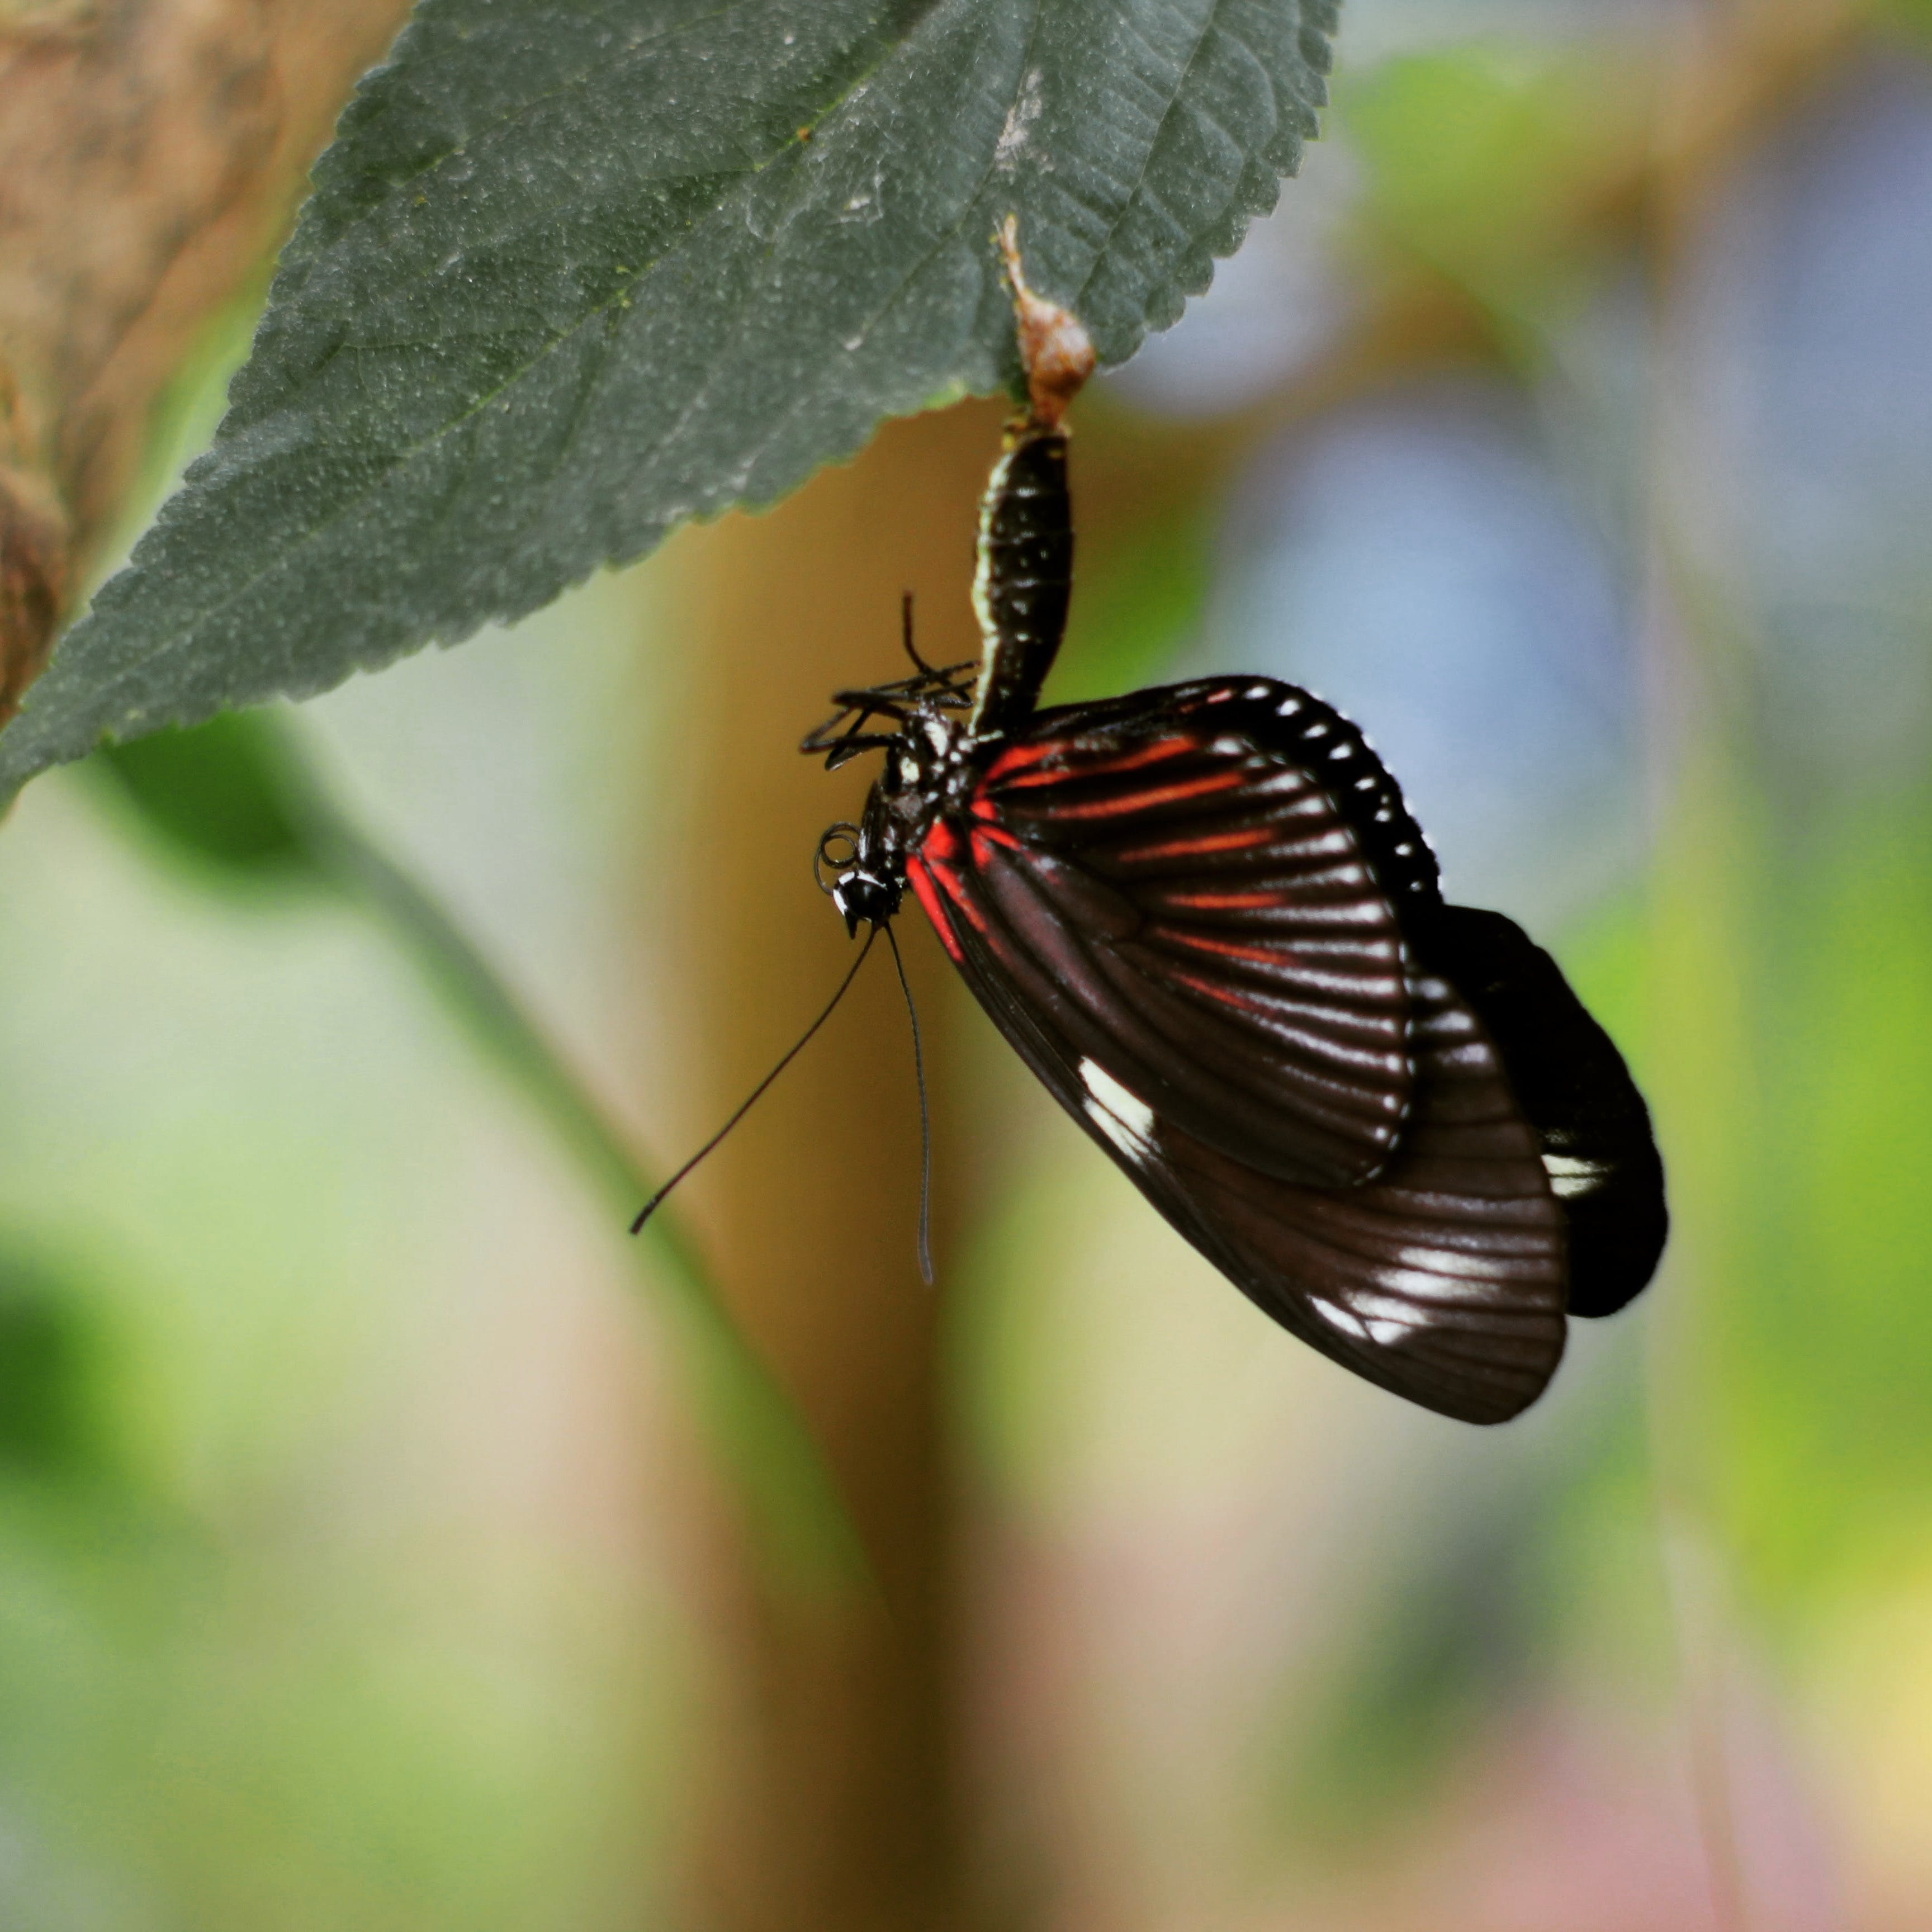 Free stock photo of #butterfly #chrysalis #wildlife #nature